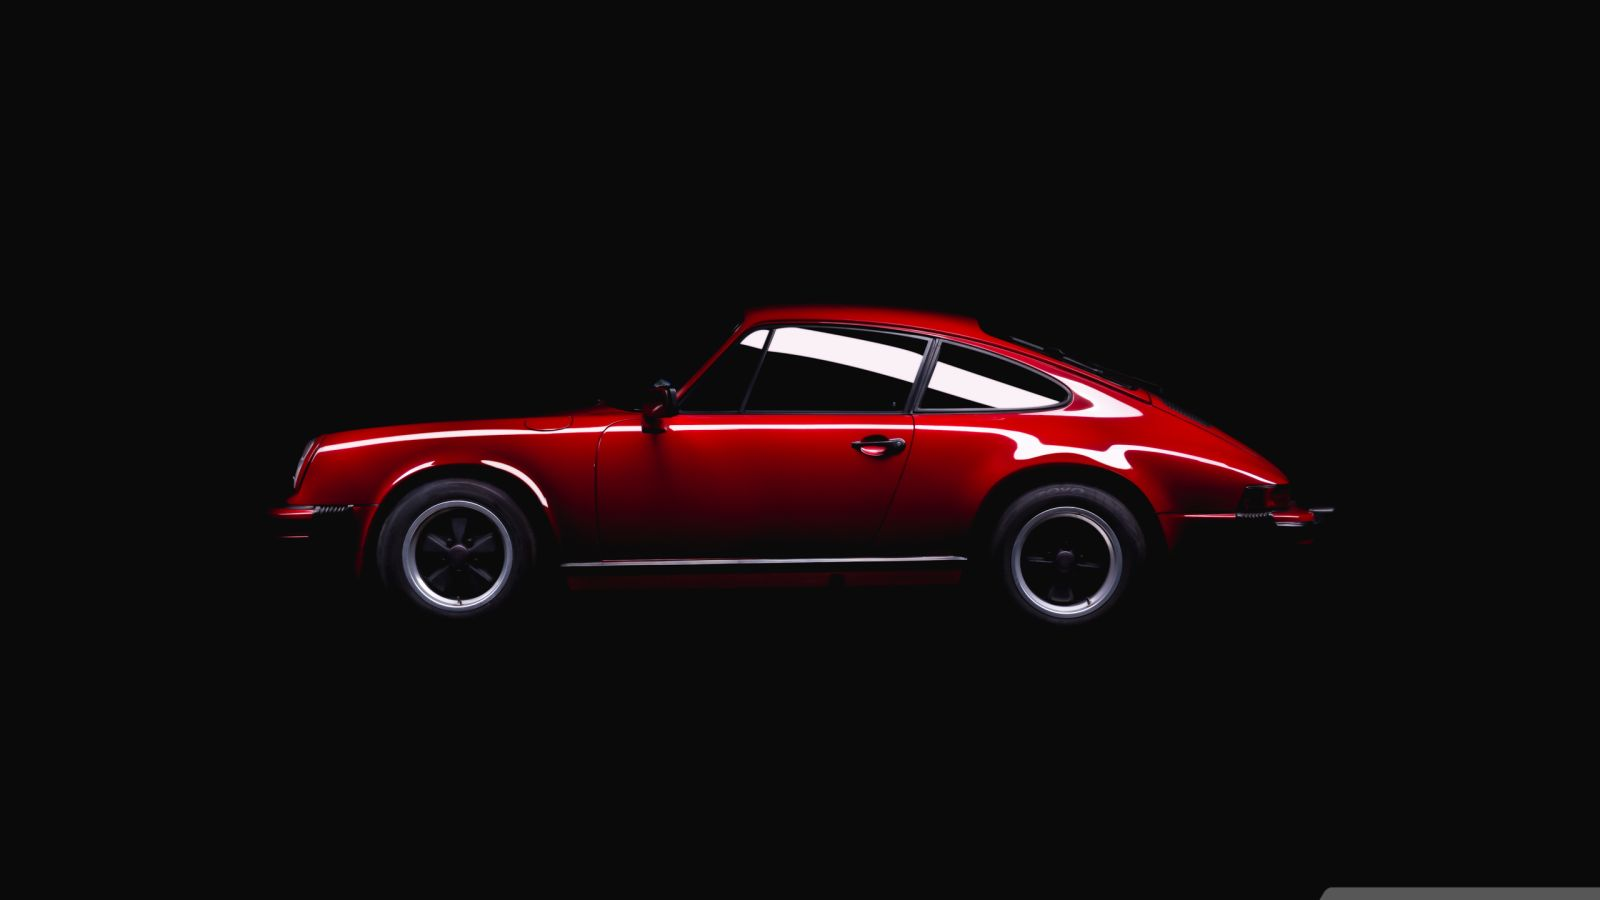 Your Ridiculously Awesome Porsche 911 Wallpaper Is Here 1600x900